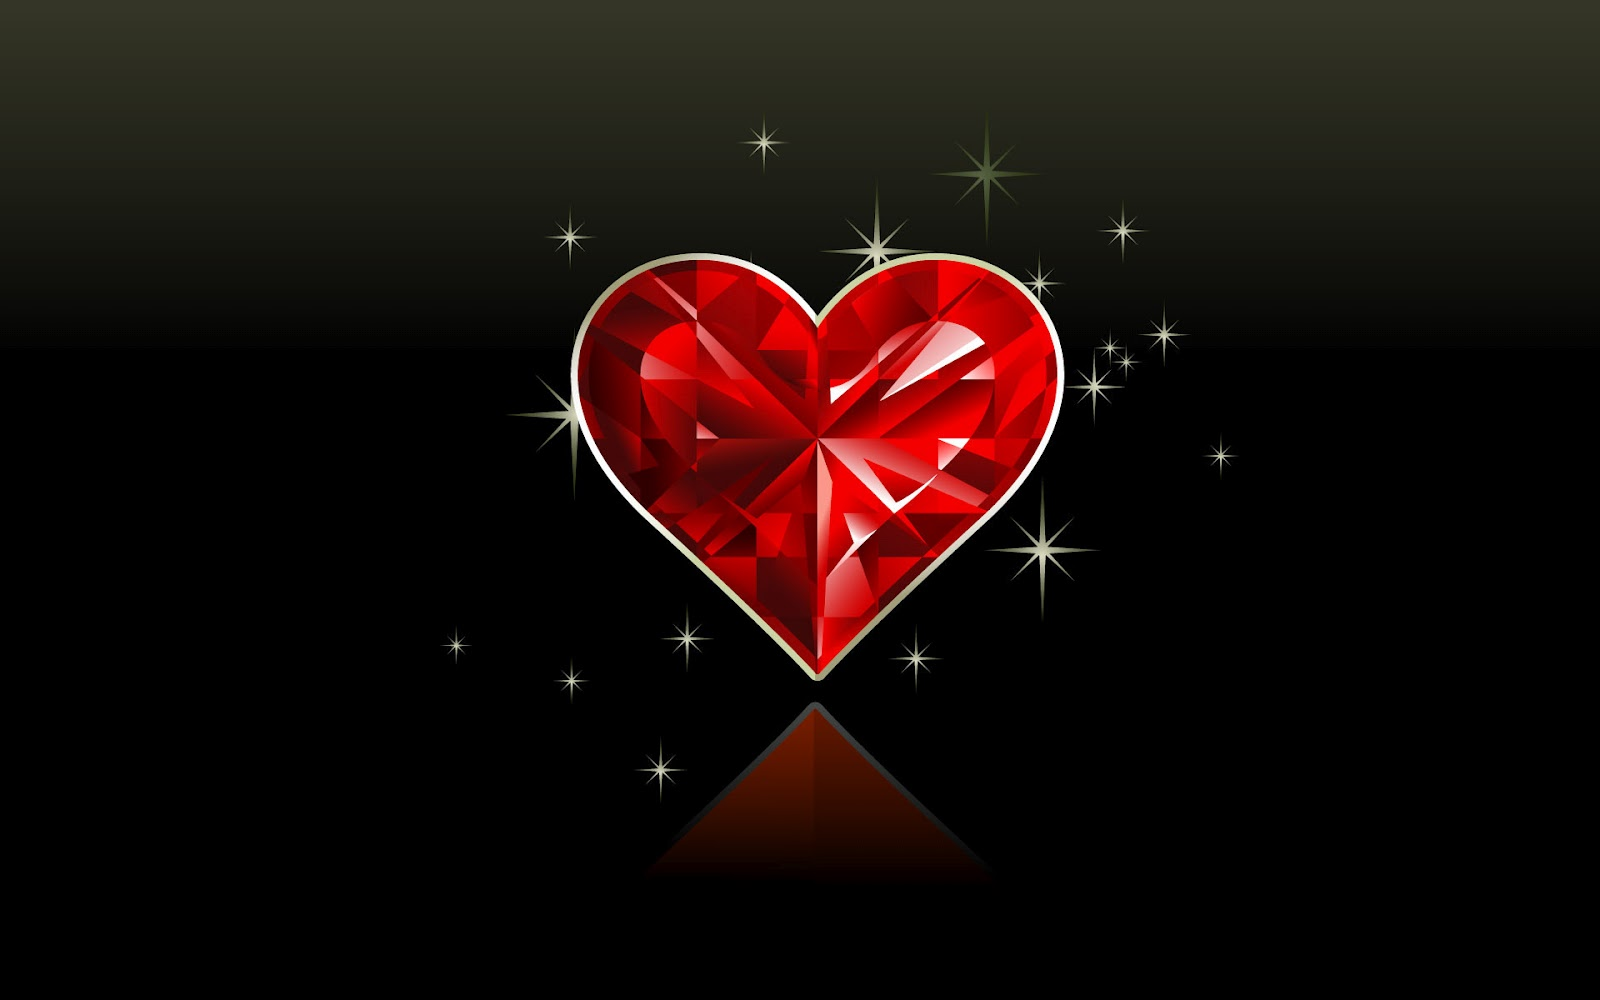 http://1.bp.blogspot.com/-qhd1Niln-ok/T_QPNYBdcFI/AAAAAAAAAoM/rATPdTkGYxI/s1600/Diamond+Heart+HD+Wallpaper.jpg